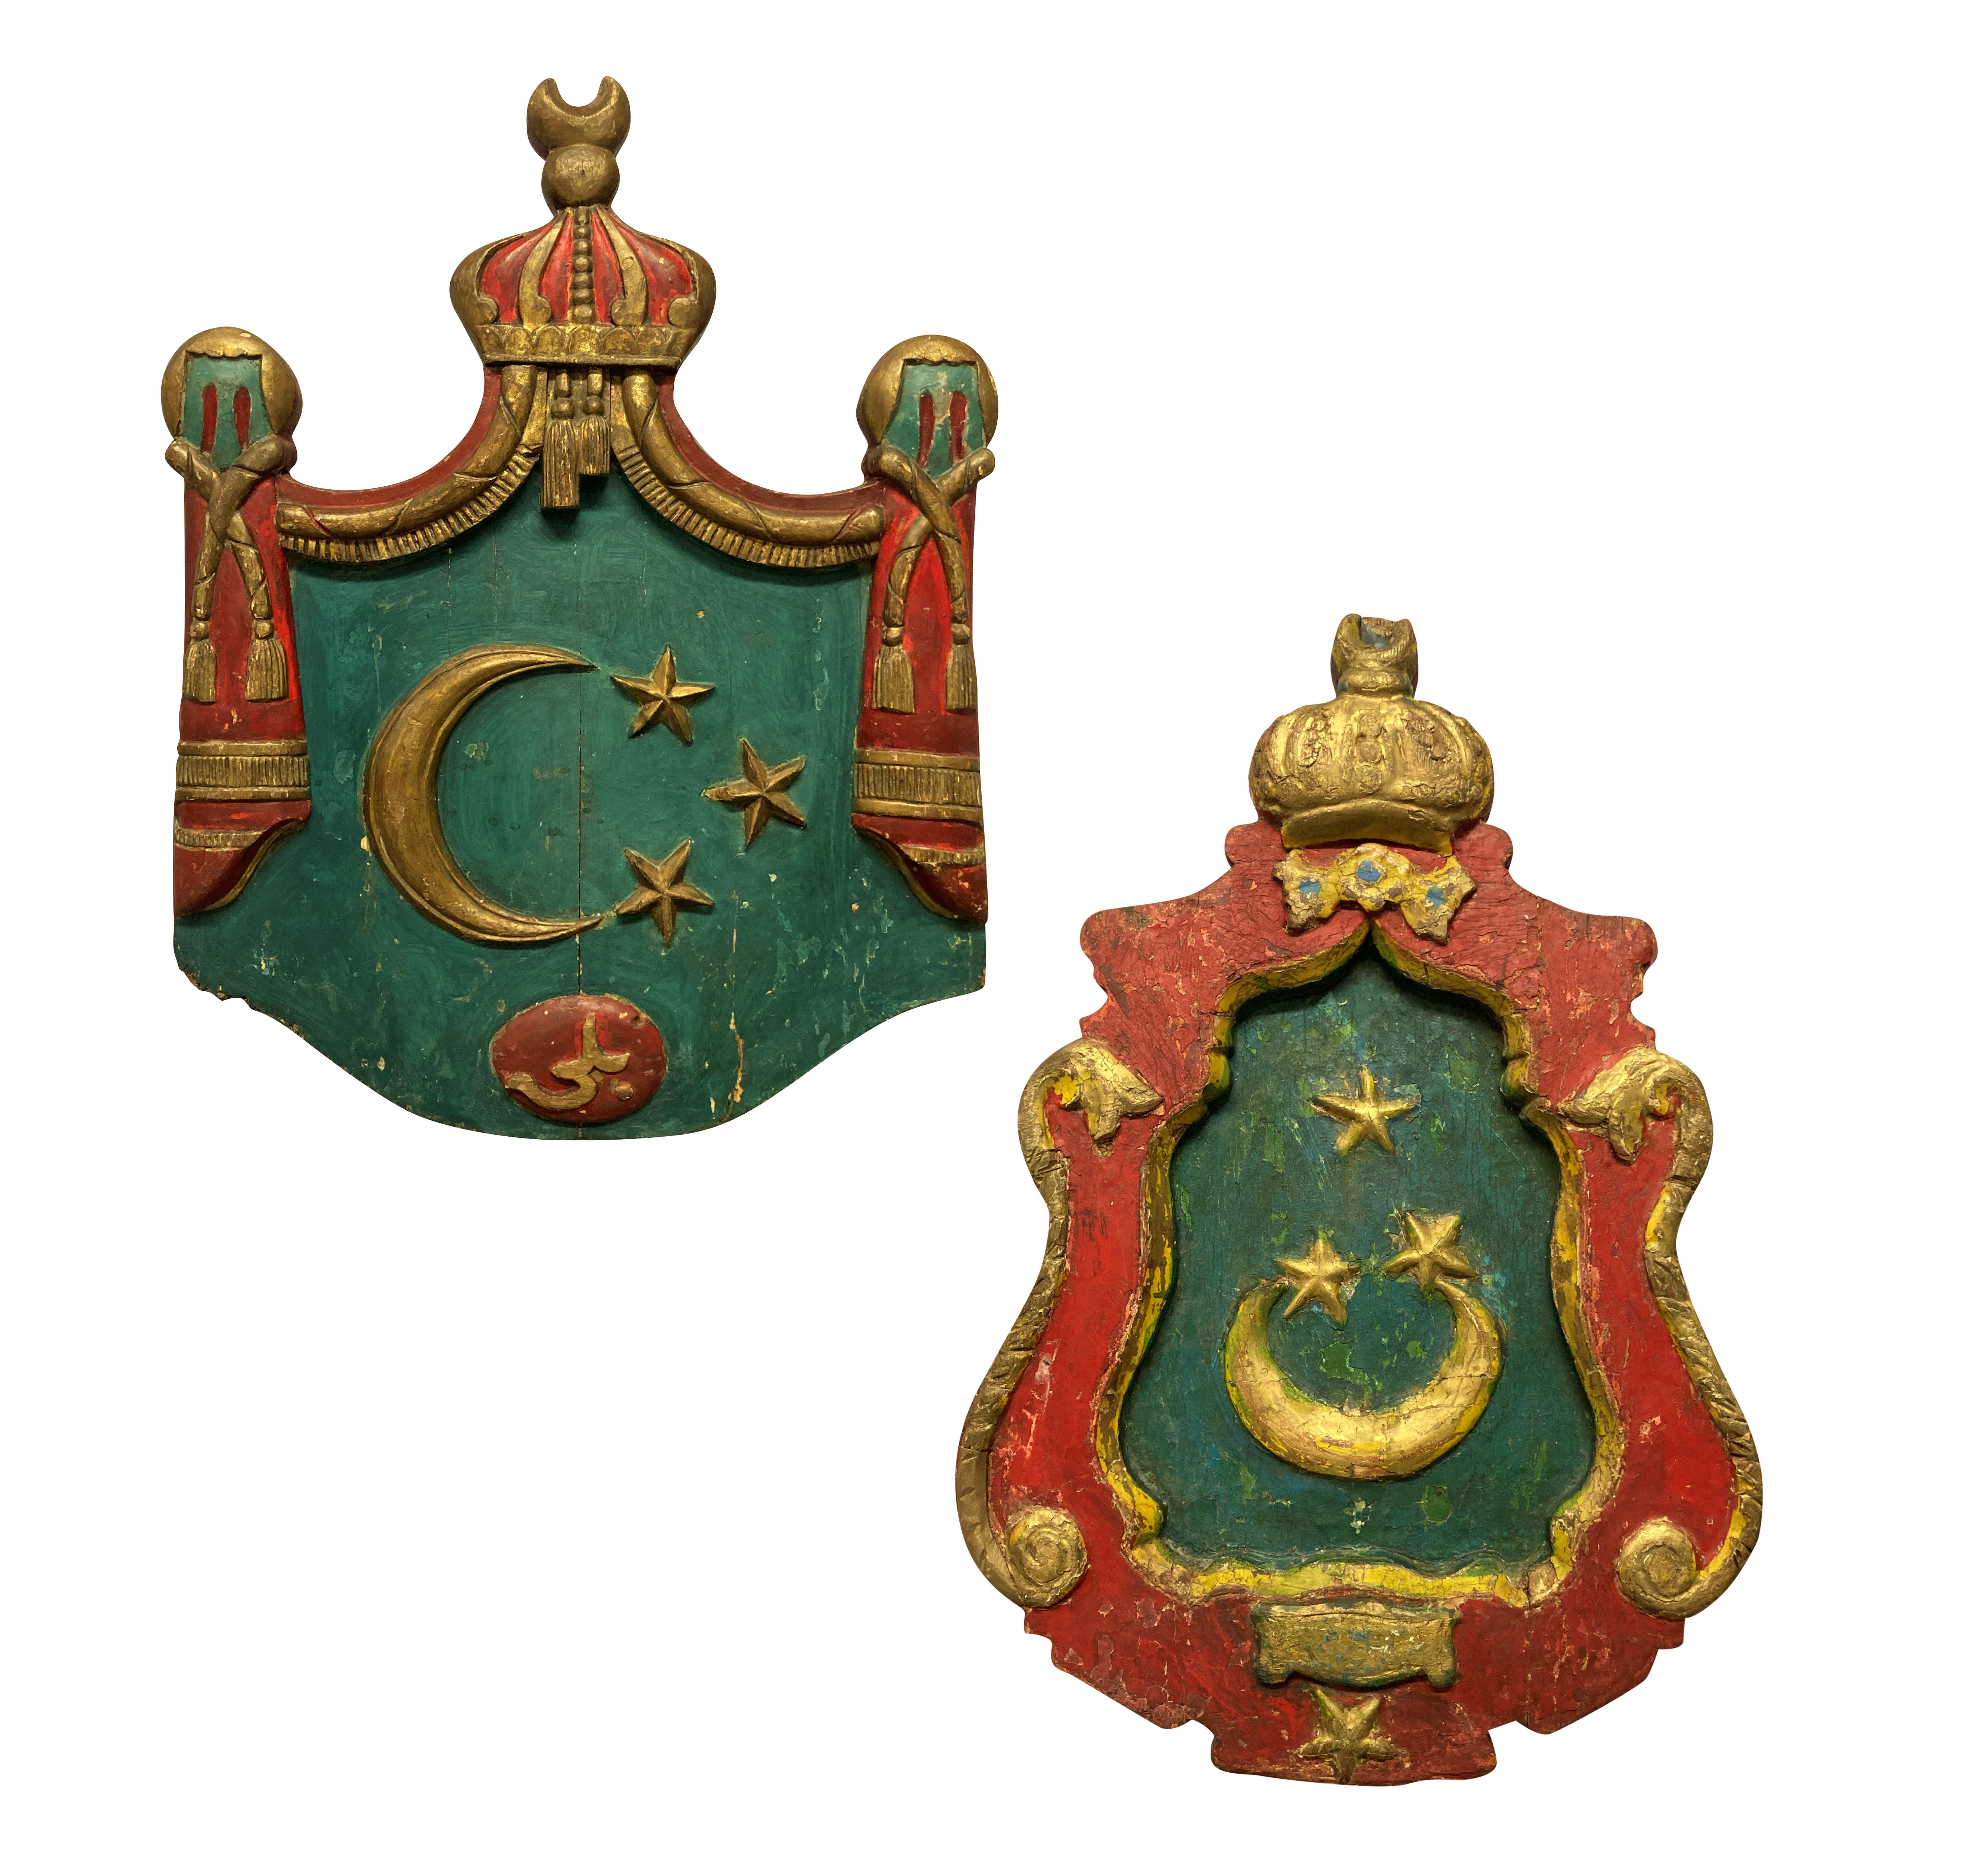 A PAIR OF RARE ISLAMIC COATS OF ARMS